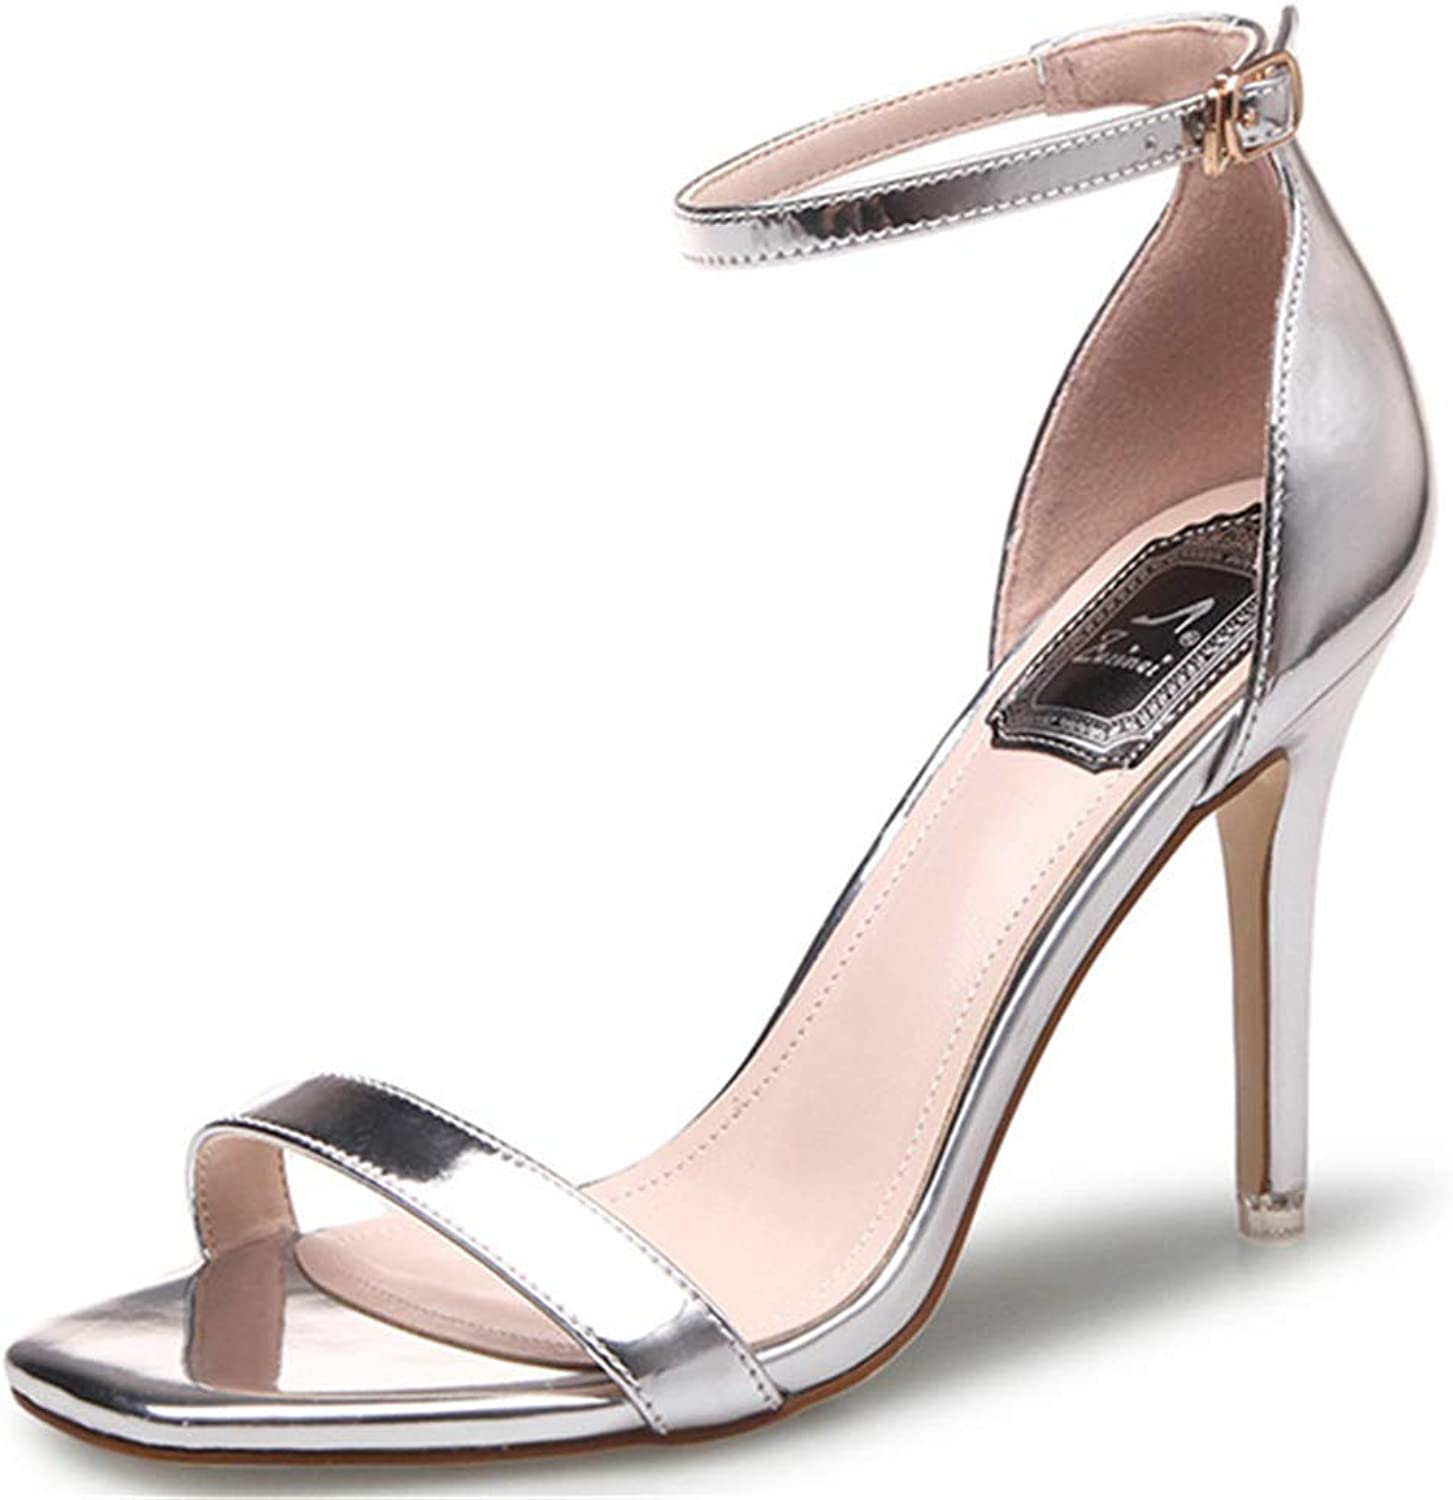 CHENGLing Women's Stiletto Open Toe Sandal Ankle Strap High Heels Sandals Party shoes